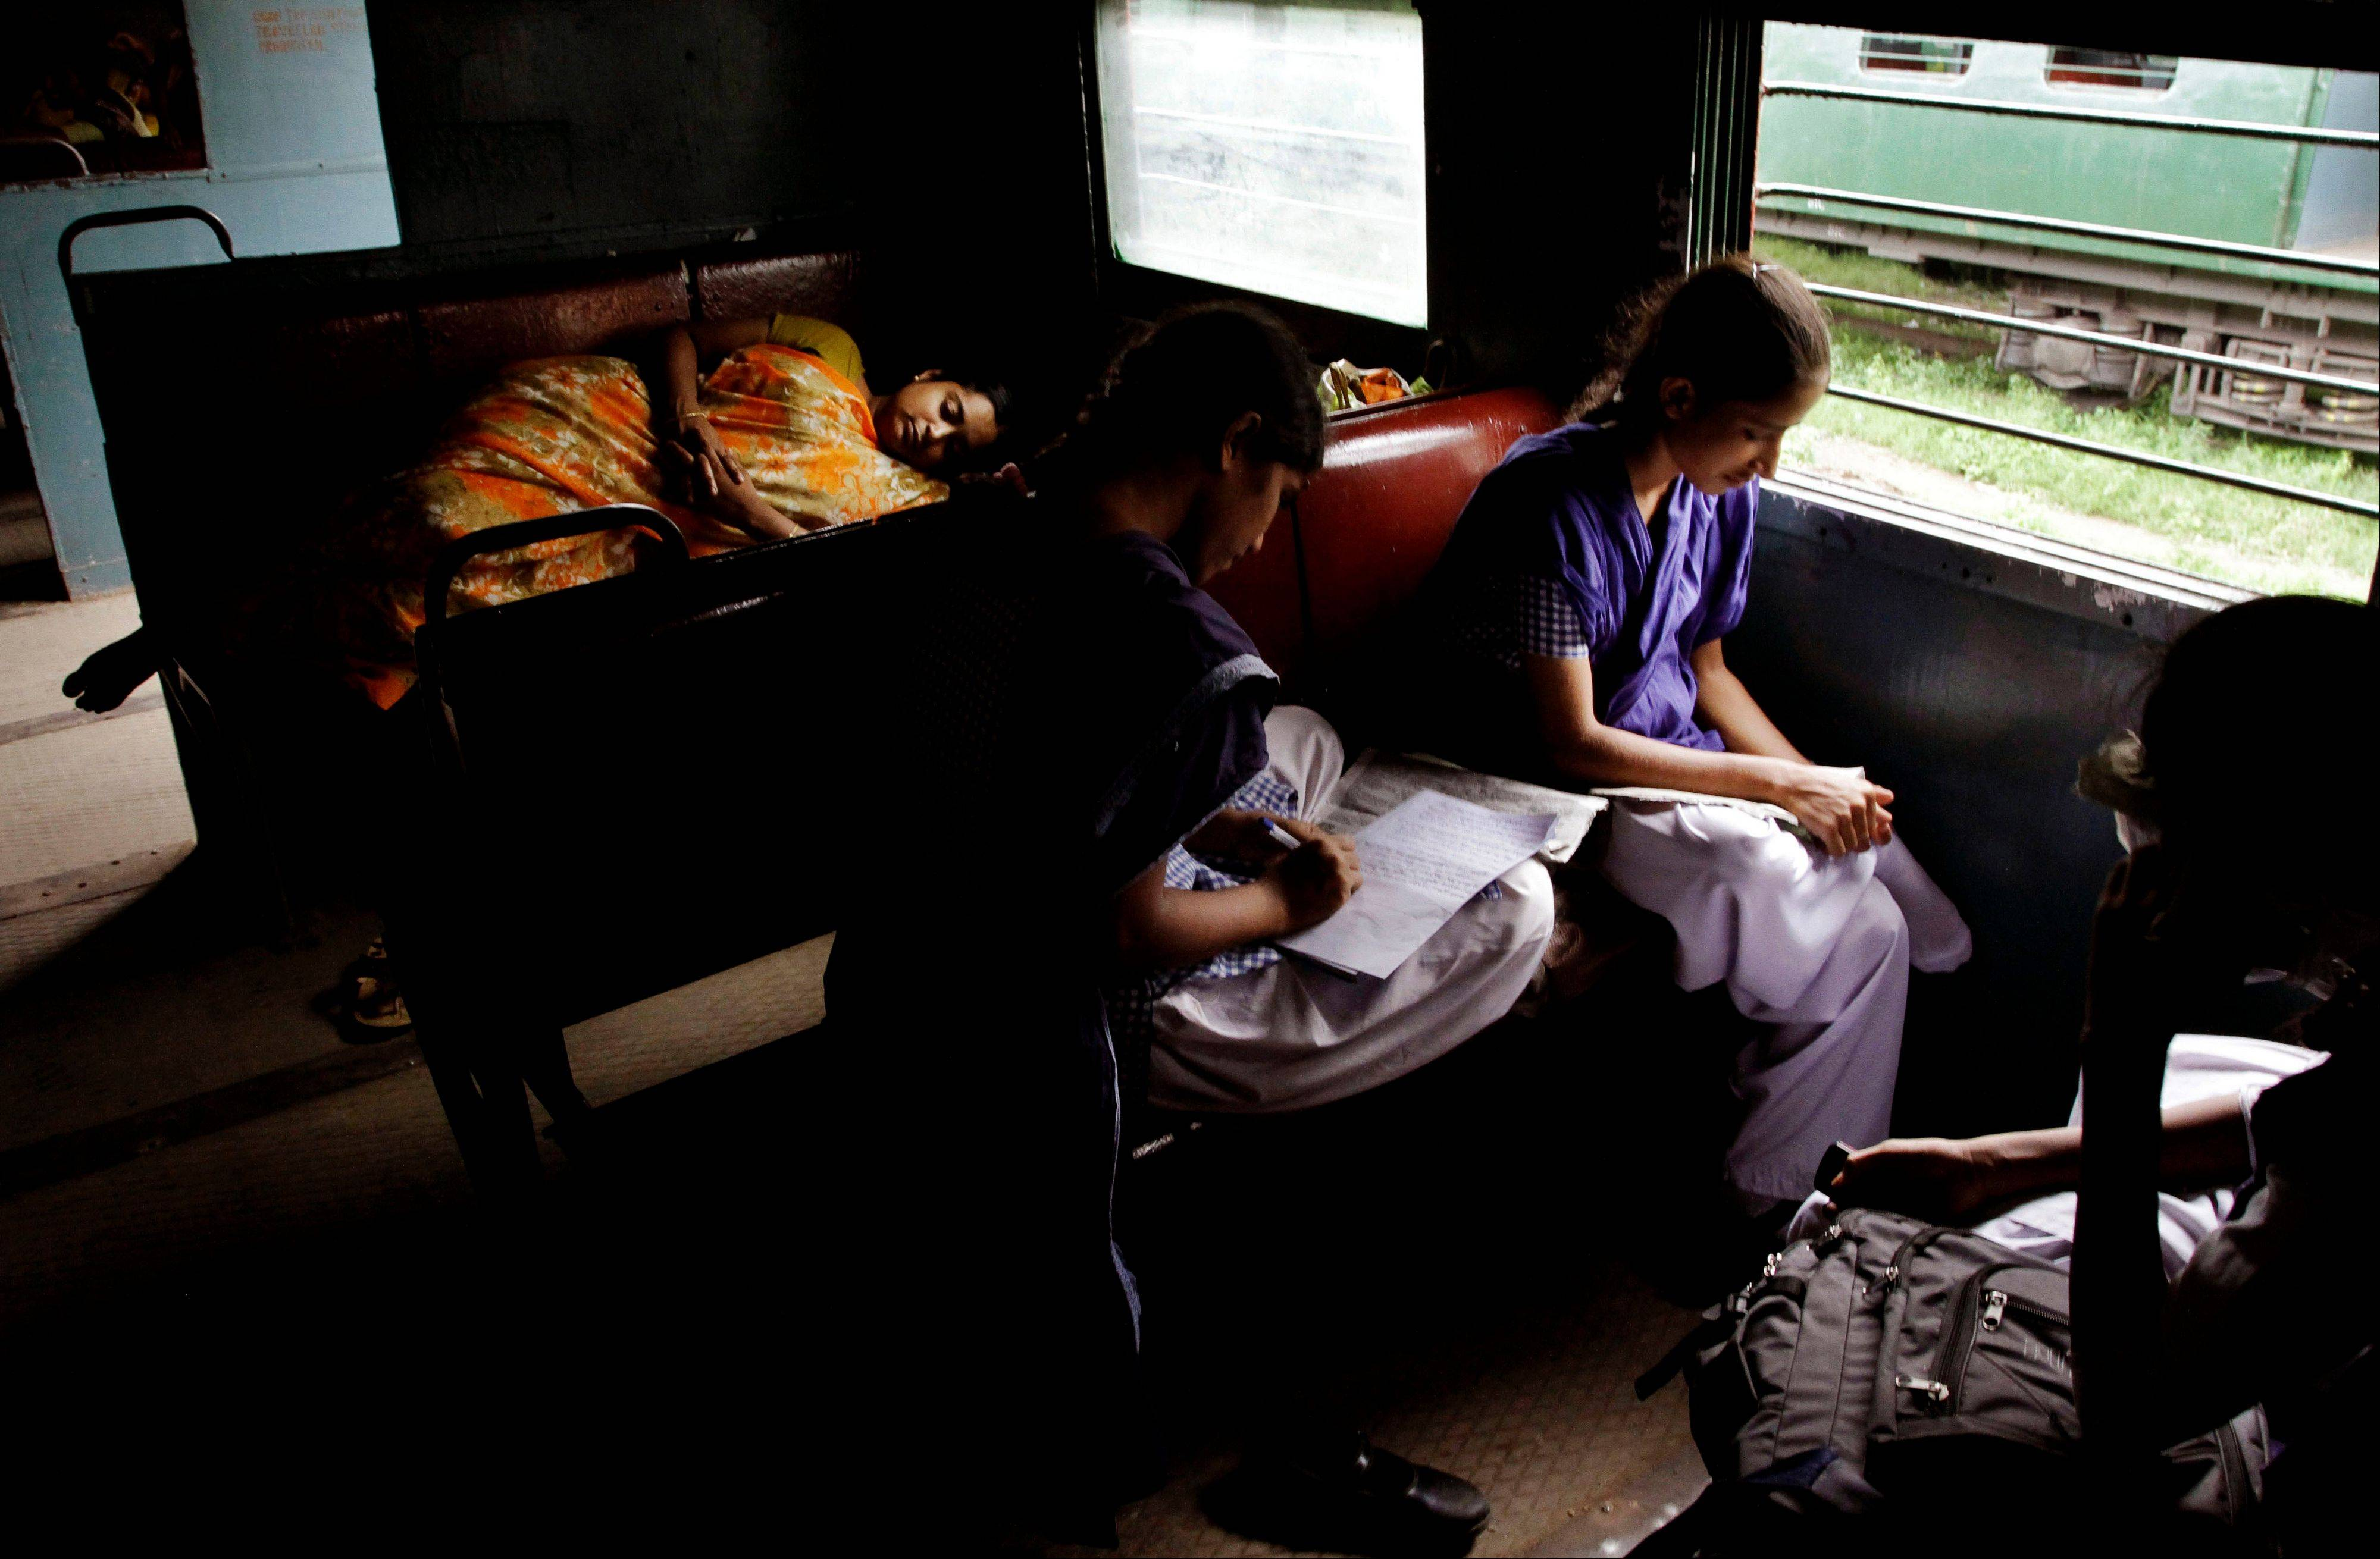 Indian stranded passengers wait inside a stalled local train following a power outage in Kolkata, India, Tuesday, July 31, 2012. India's energy crisis cascaded over half the country Tuesday when three of its regional grids collapsed, leaving 620 million people without government-supplied electricity for several hours in, by far, the world's biggest-ever blackout.